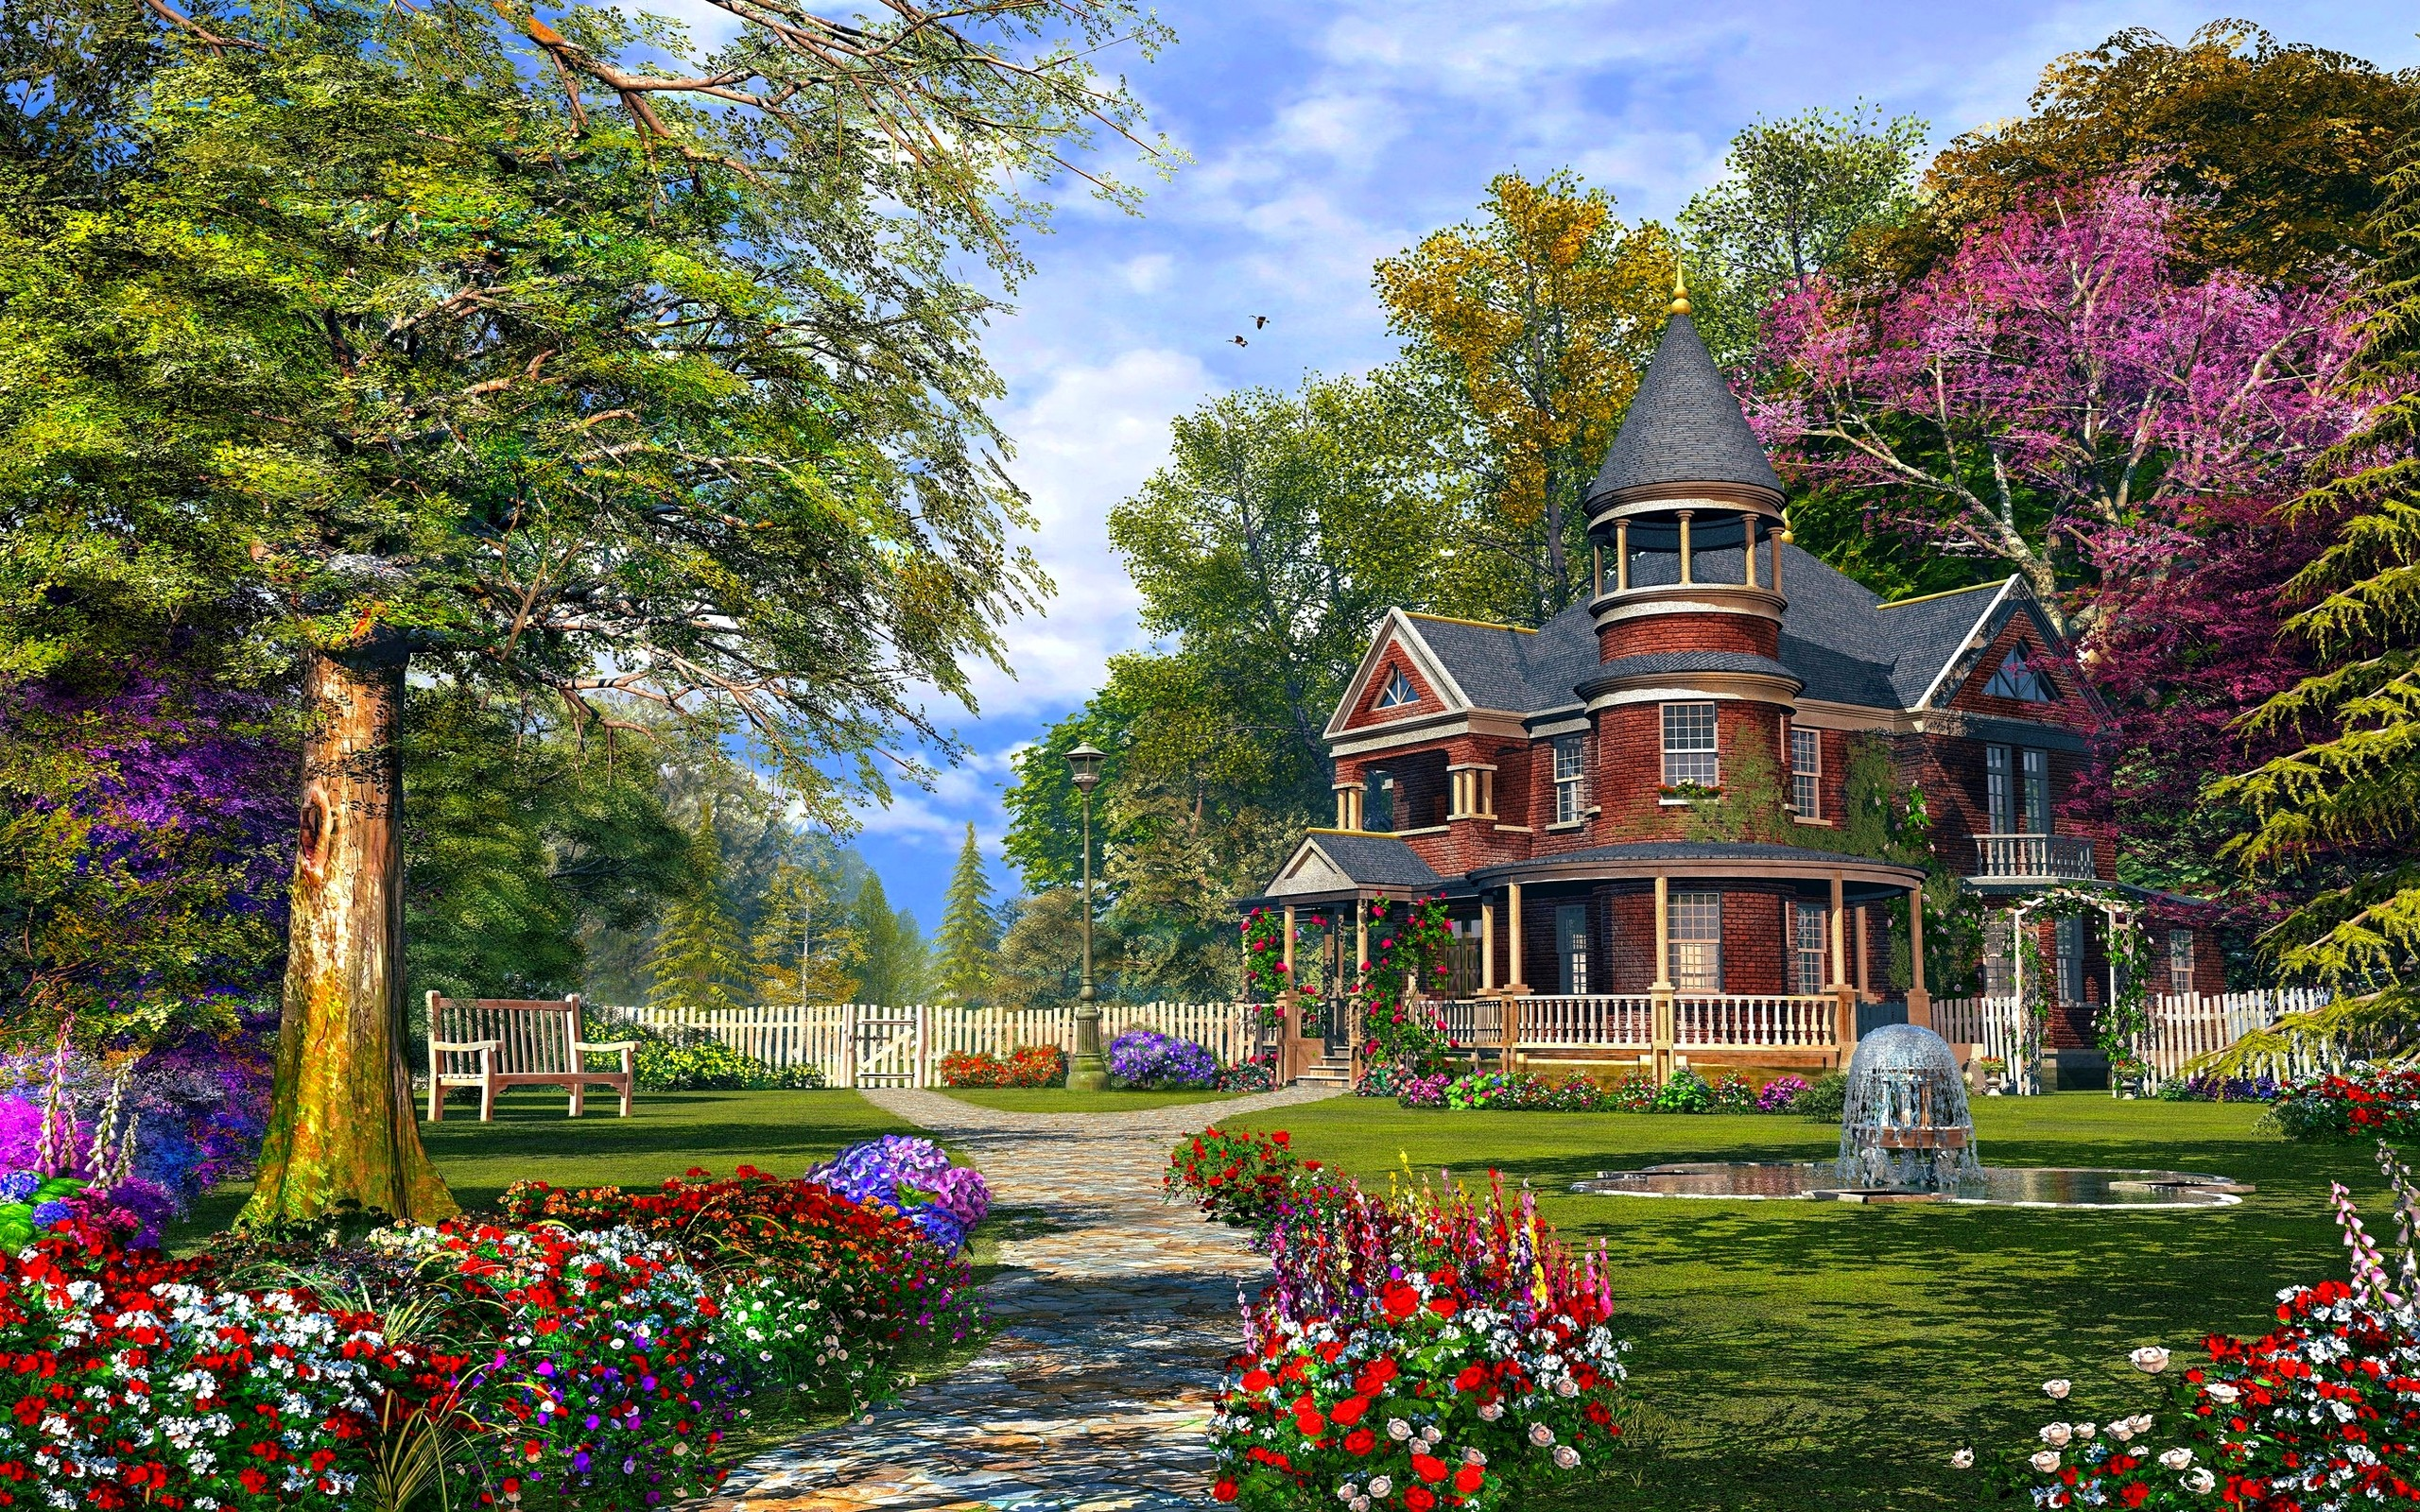 wallpaper country houses beautiful - photo #43